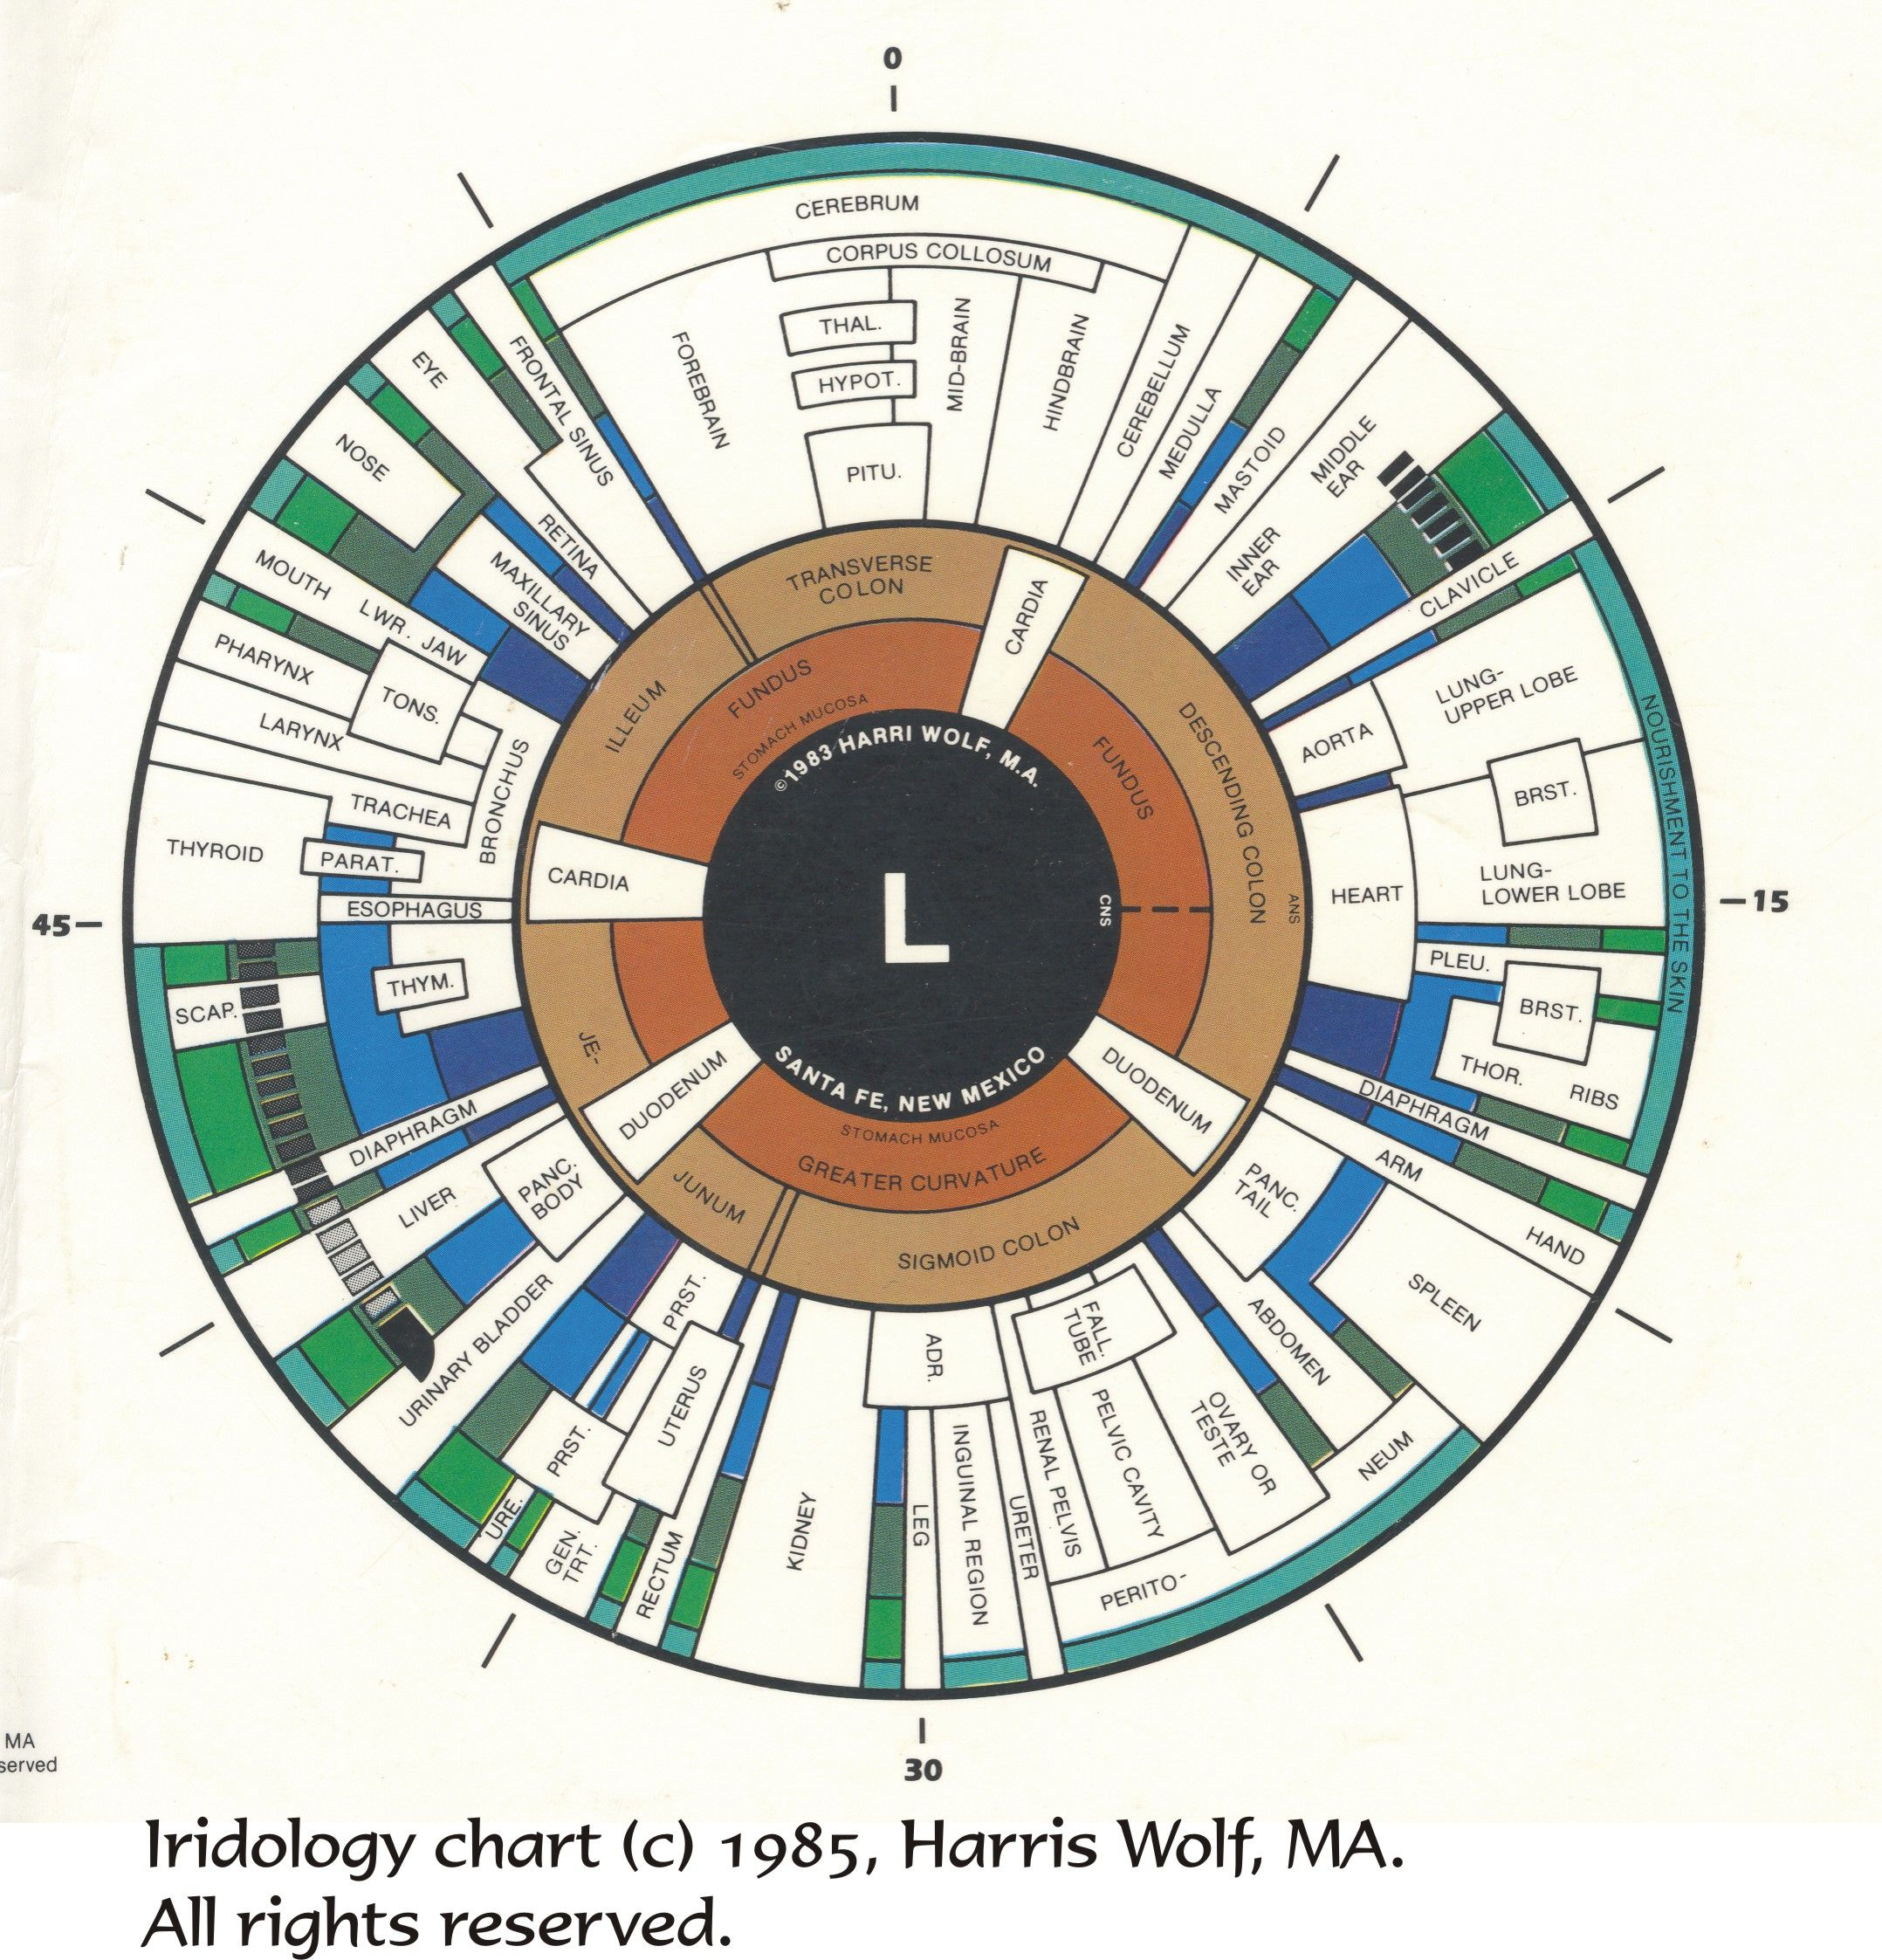 Iridology chart for the iris of the left eye defines the many iridology chart for the iris of the left eye defines the many iridology zone details charted to show how iridology relates to tissues organs of t geenschuldenfo Gallery